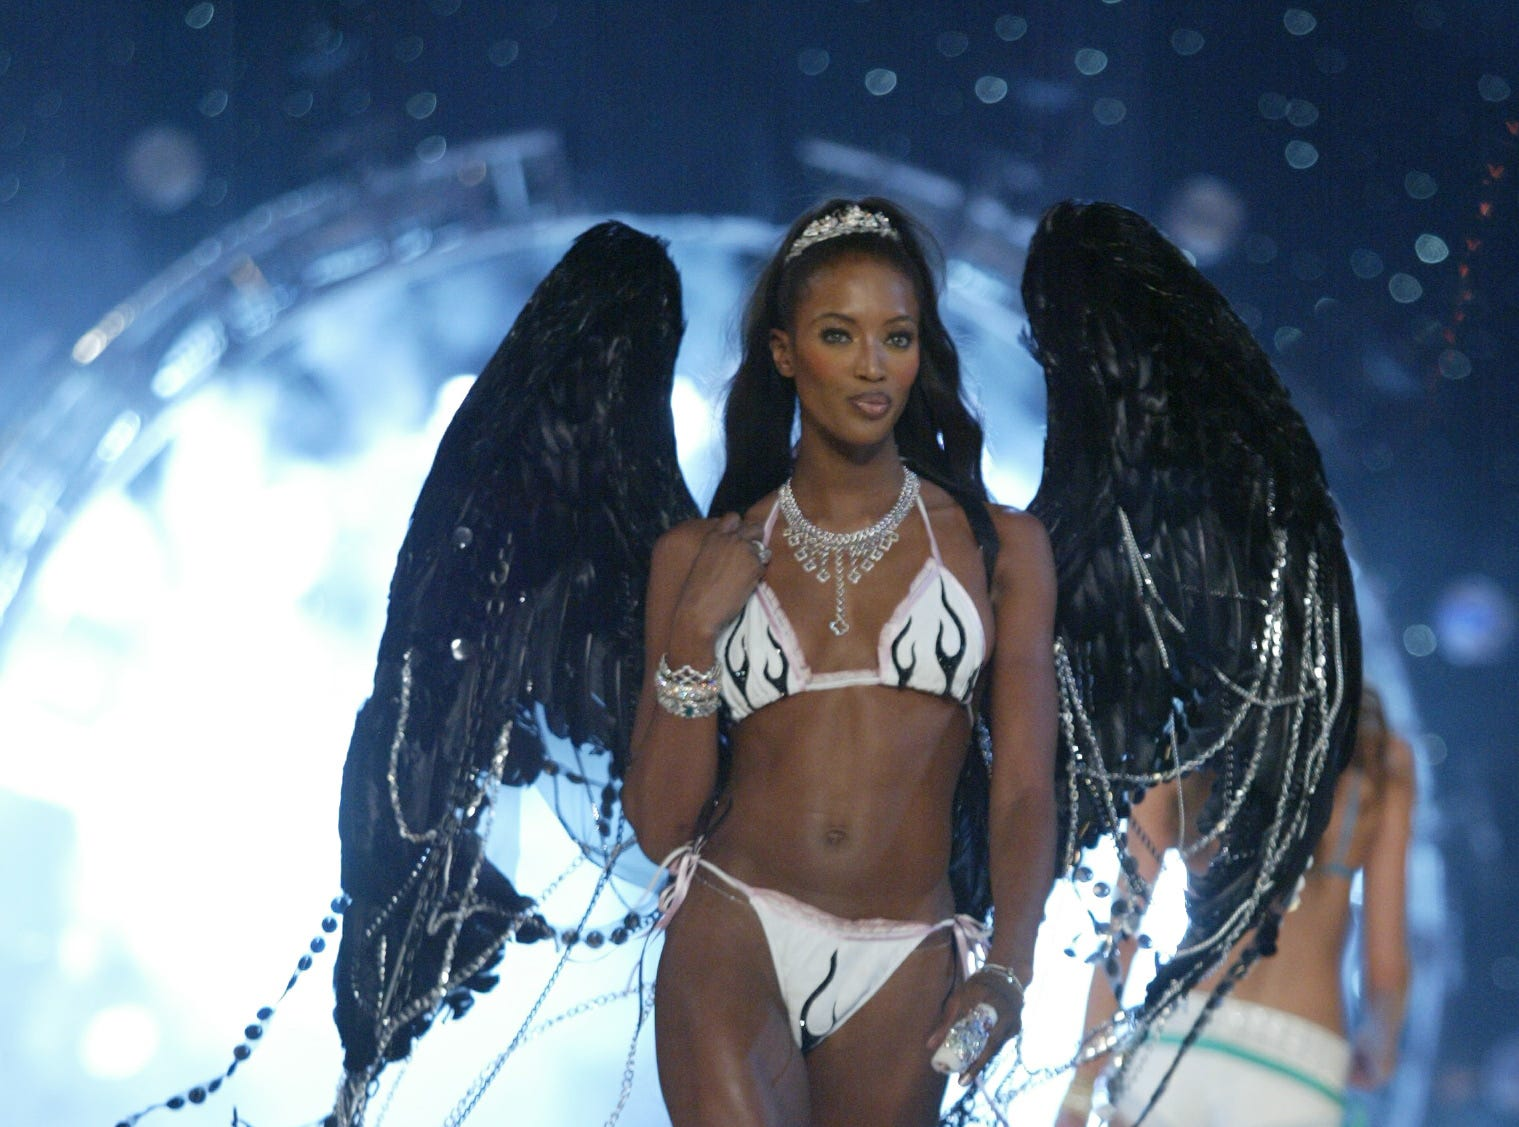 11/13/03 -- NEW YORK, NY -- VICTORIA'S SECRET FASHION SHOW -- Victoria's Secret supermodel Naomi Campbell on the runway during the  Victoria's Secret Fashion Show held at the Lexington Avenue Armory in New York City.   Photo by Eileen Blass, USA TODAY ORG XMIT: VICTORIA 19 EB547